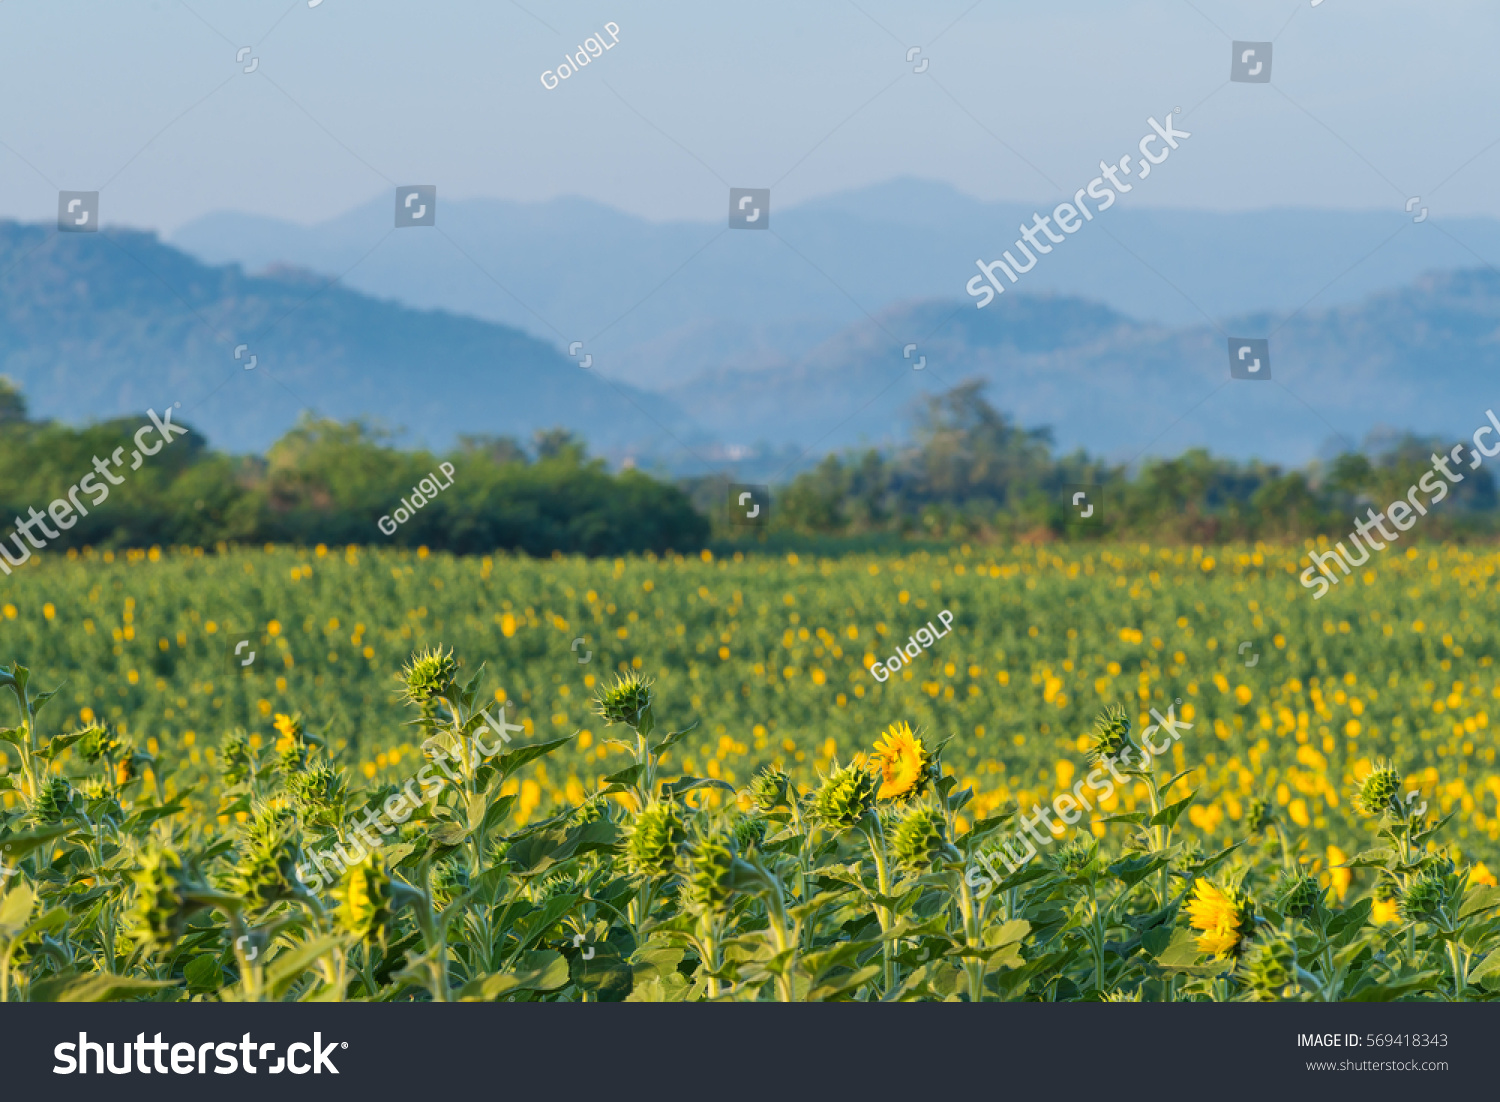 sunflower field picture blooming - photo #34